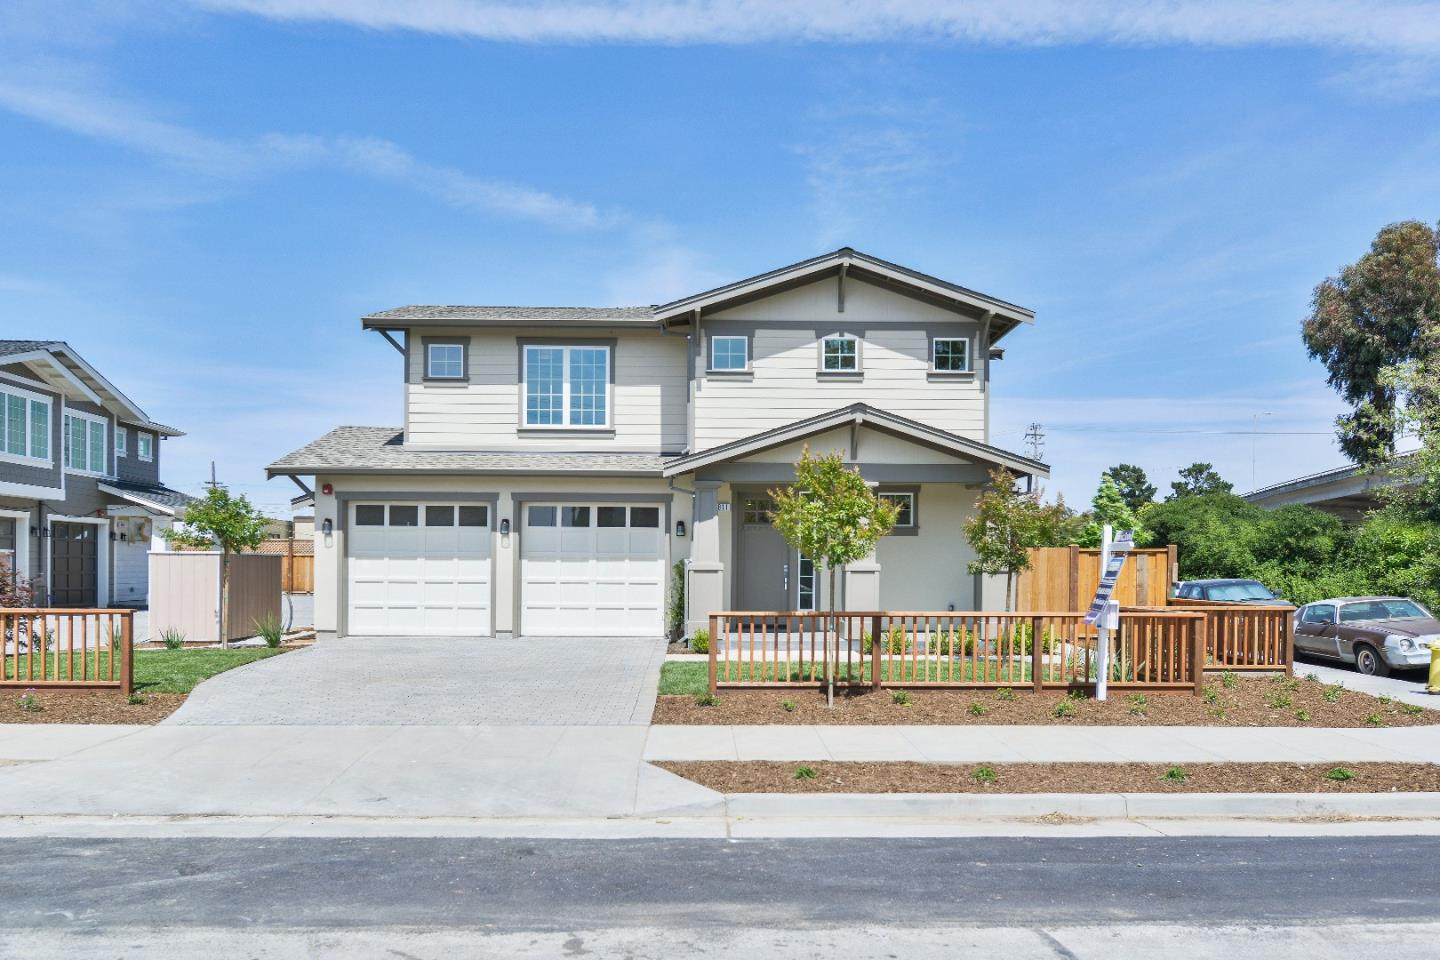 Additional photo for property listing at 1811 Gum St  SAN MATEO, CALIFORNIA 94402